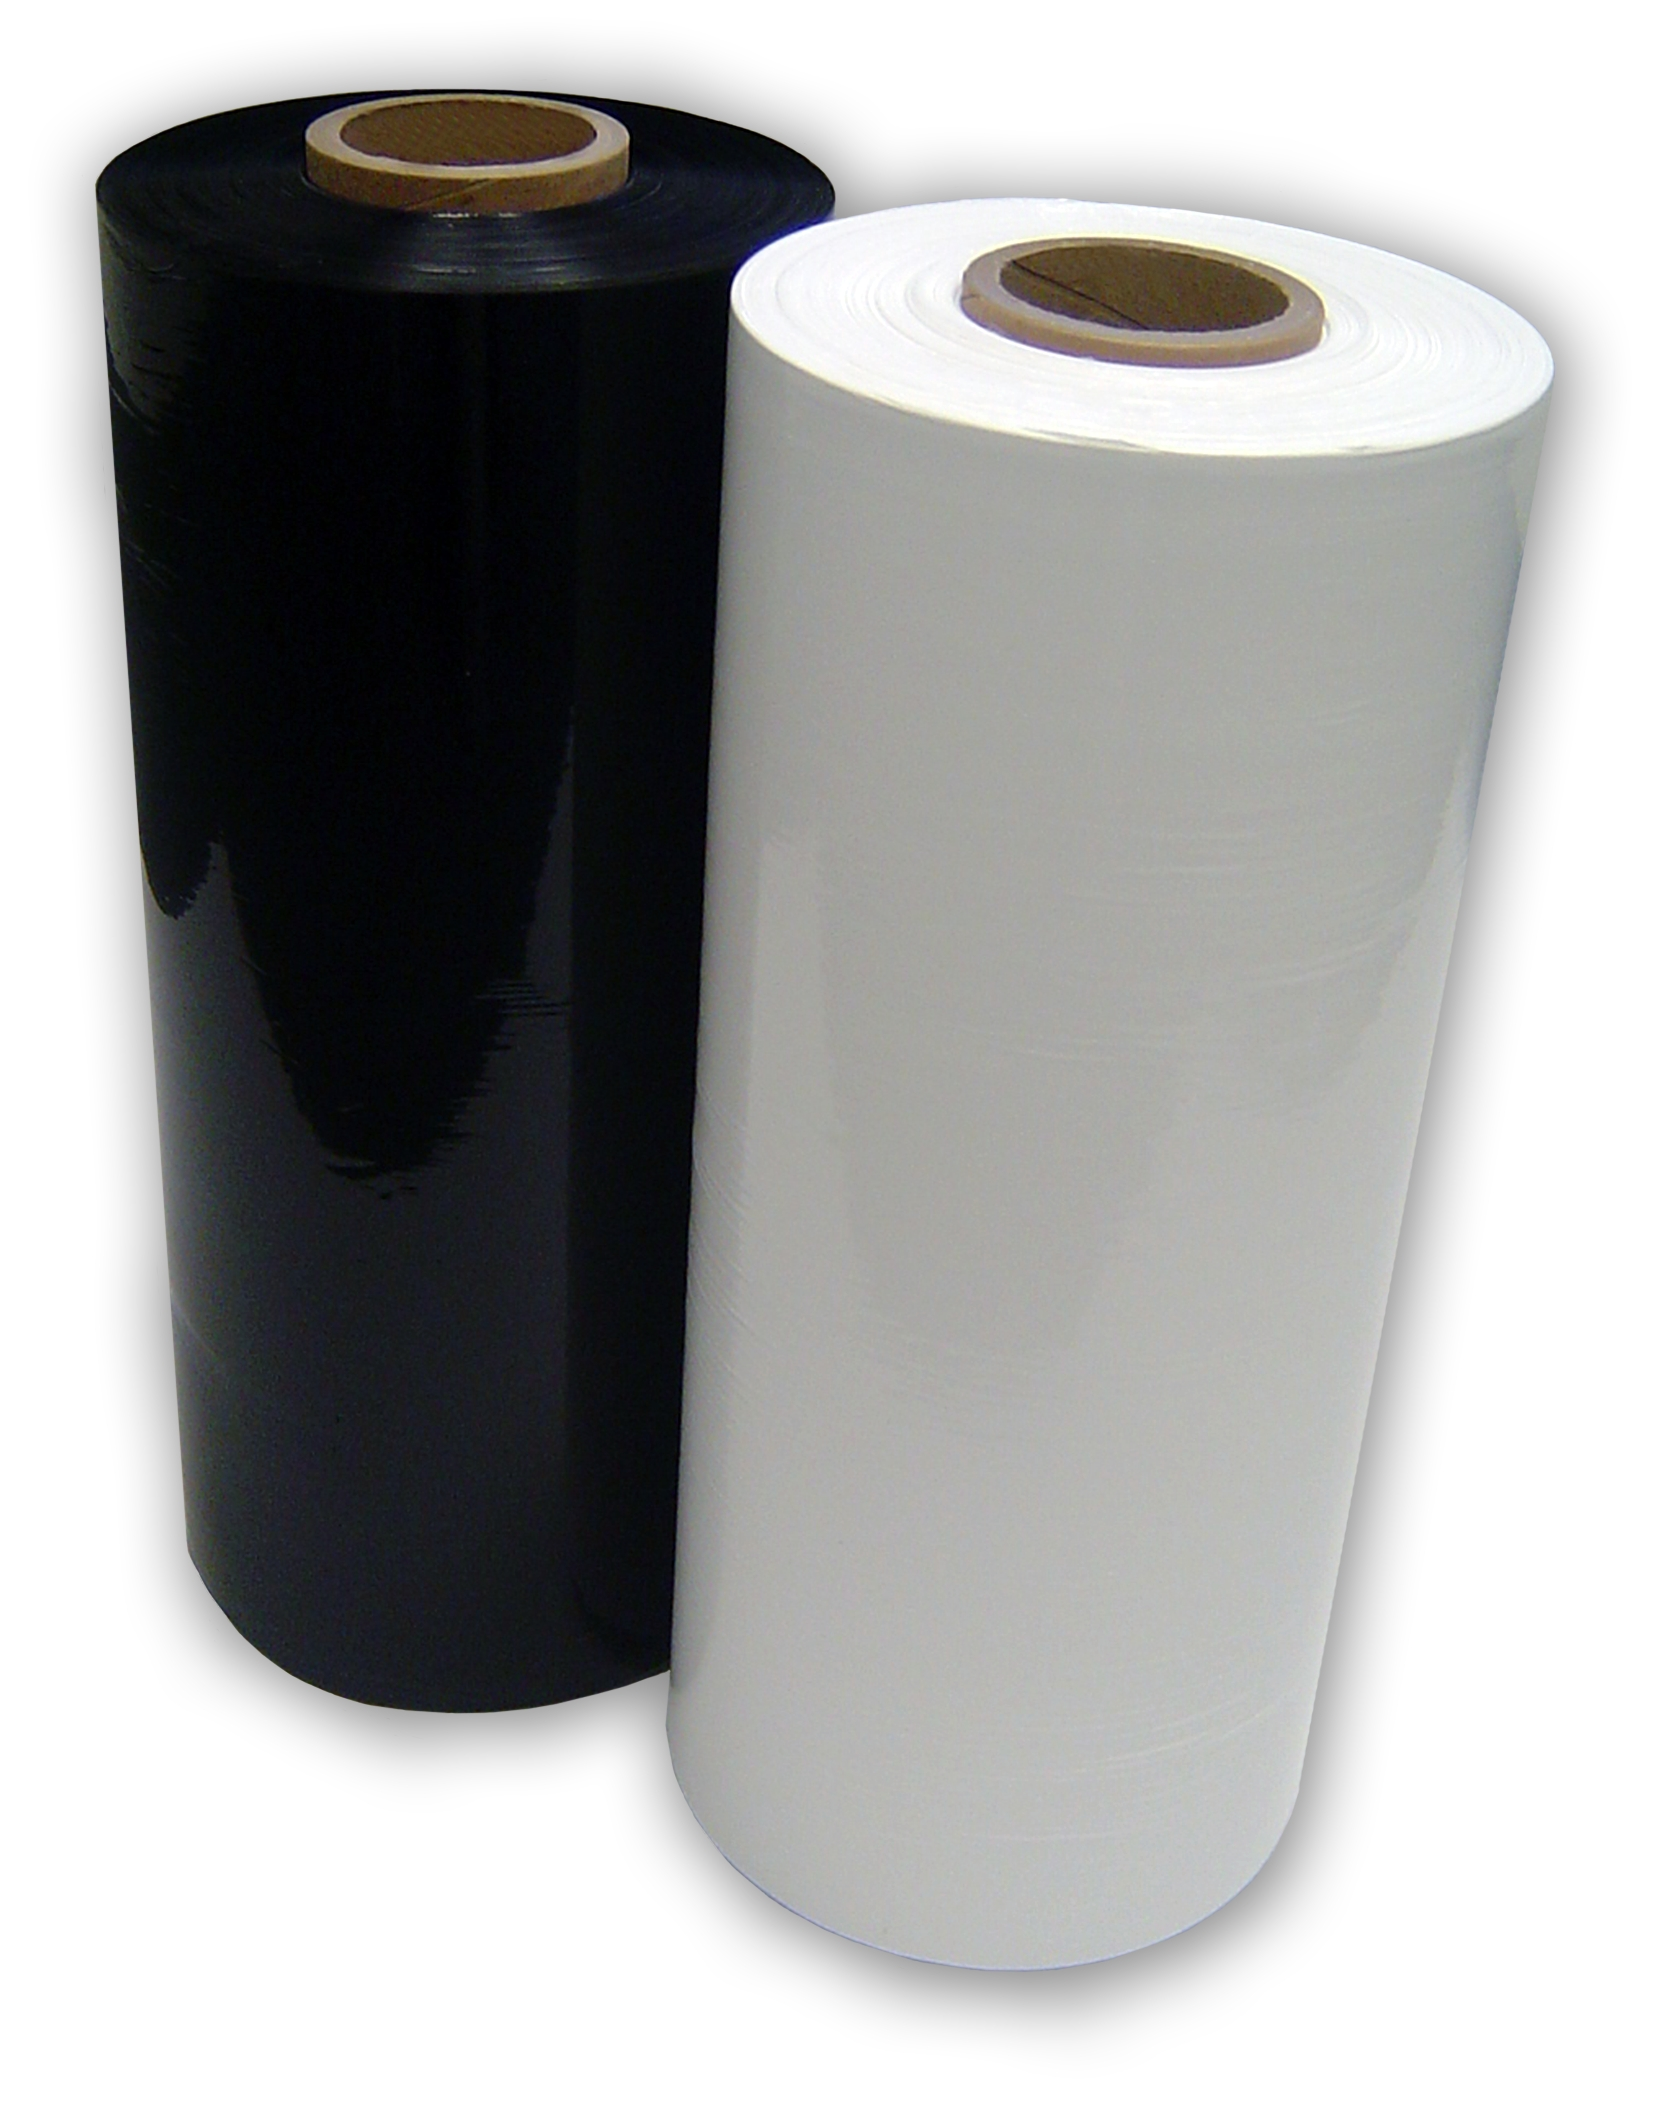 Black and White Opaque Rolls